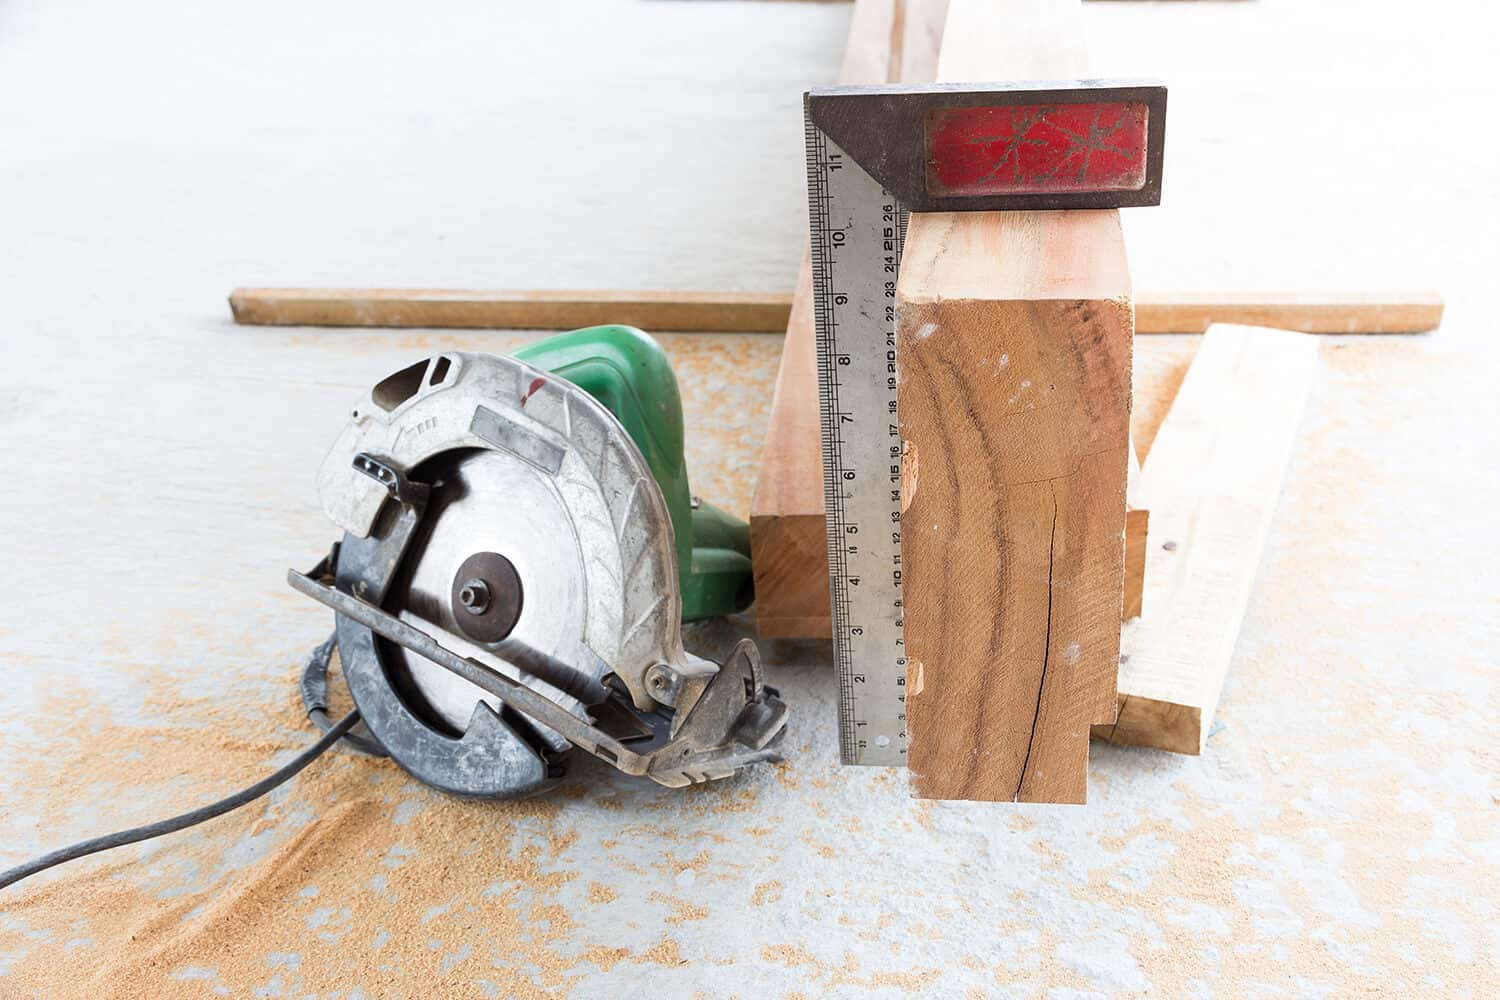 Hitachi C7SB3 Circular Saw